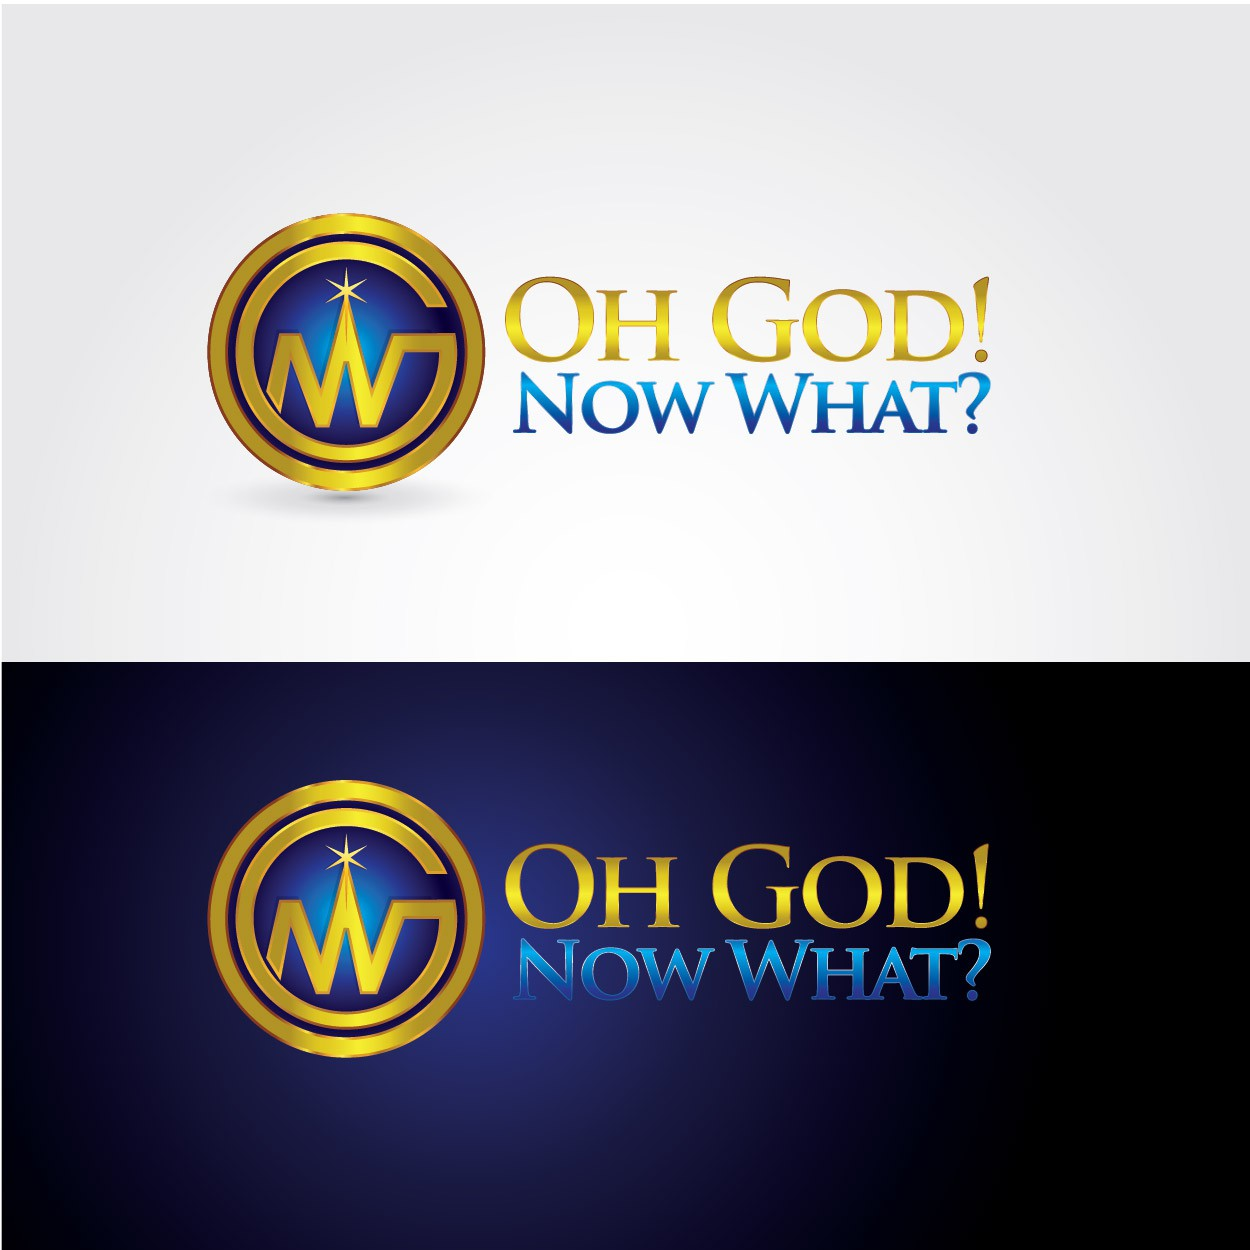 Create the next logo for Oh God! Now What?